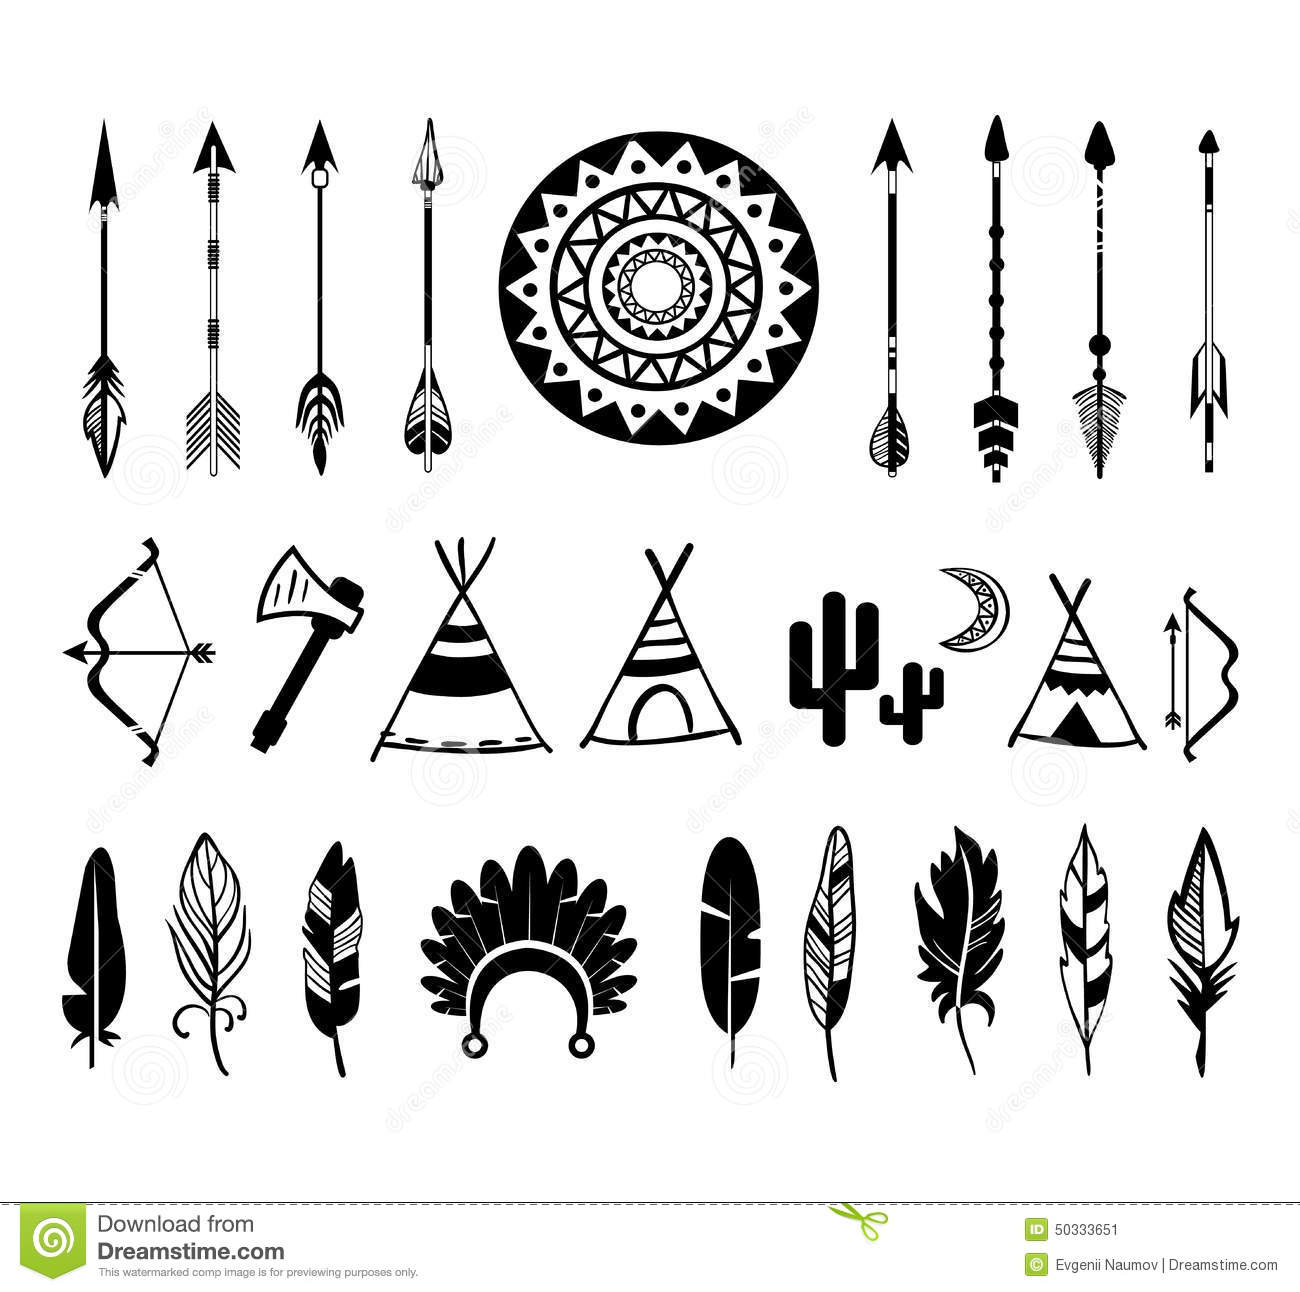 Stock Illustration Vector Black White Pattern Hand Drawn Style Boho Hippy Tribal Elements Image57120814 moreover 63790 moreover Indian arrow in addition Dreamcatcher 15582430 also Royalty Free Stock Image Mayan Pyramids Woodcut Style Image El Tajin Chichen Itza Mexico Image32820196. on native american vector graphics